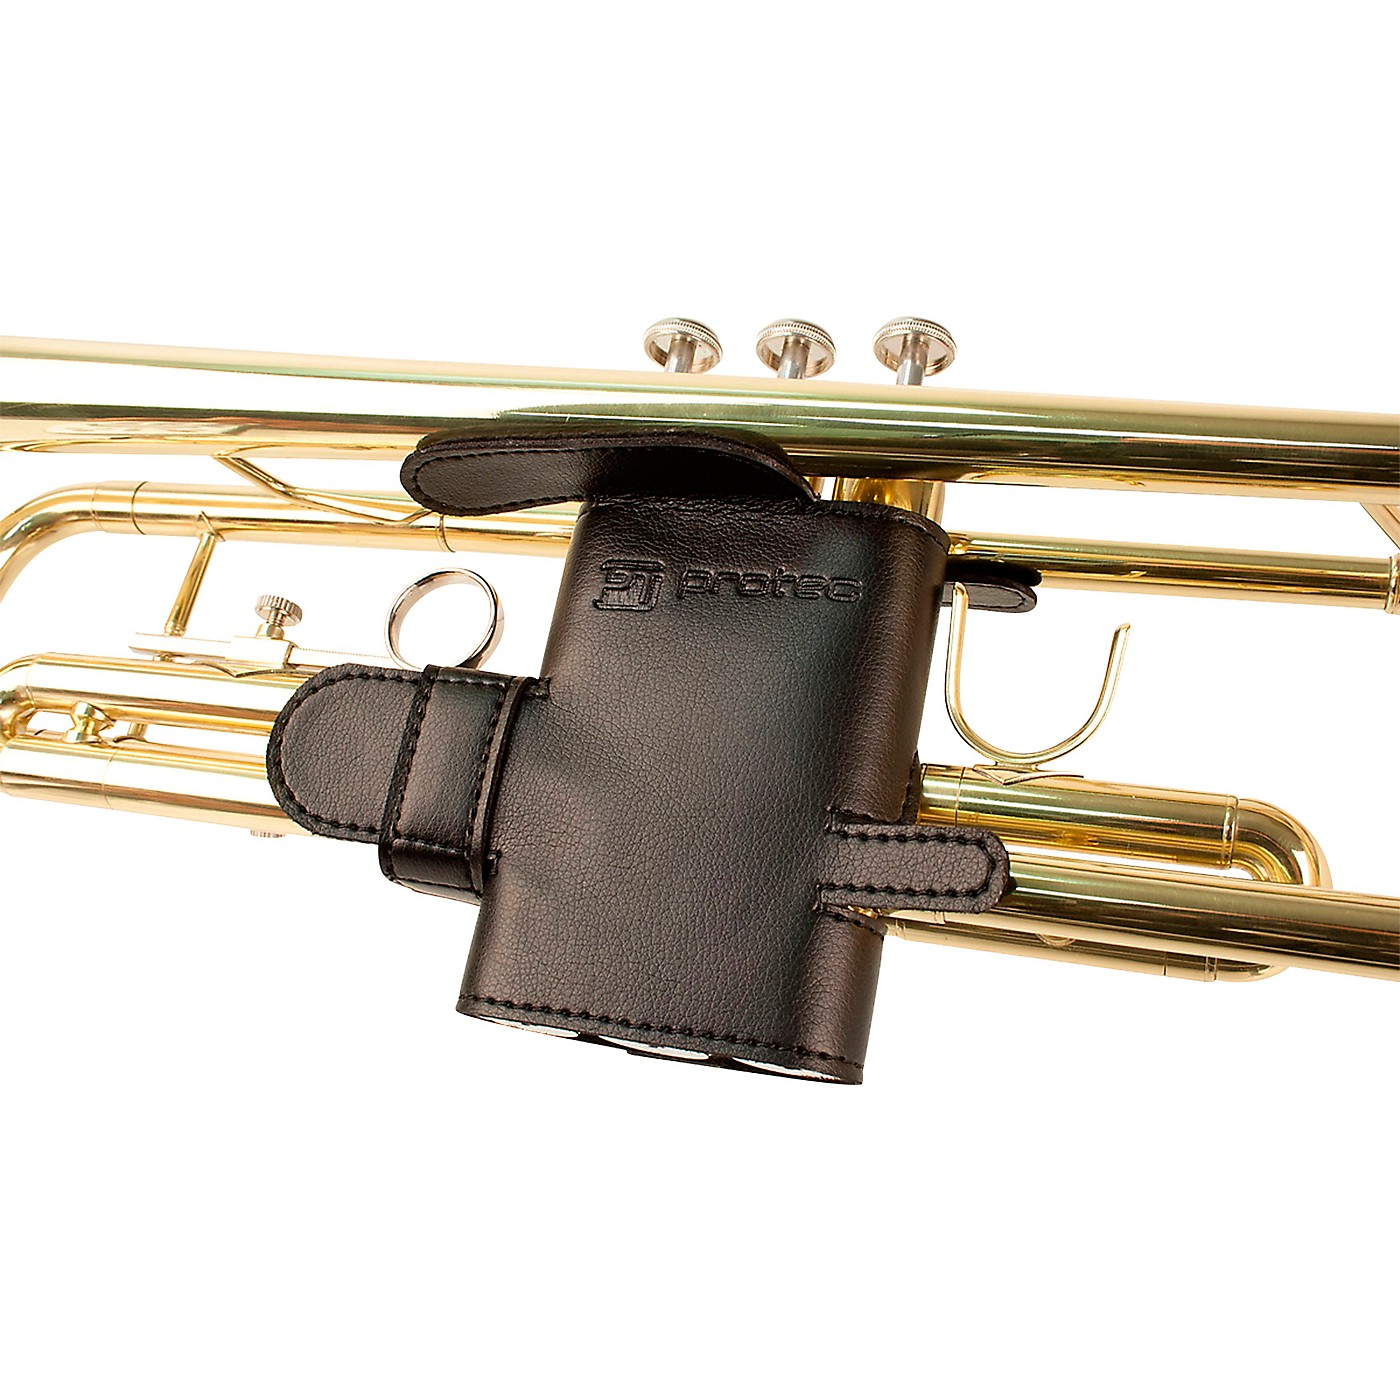 Protec Trumpet 6-Point Leather Valve Guard thumbnail